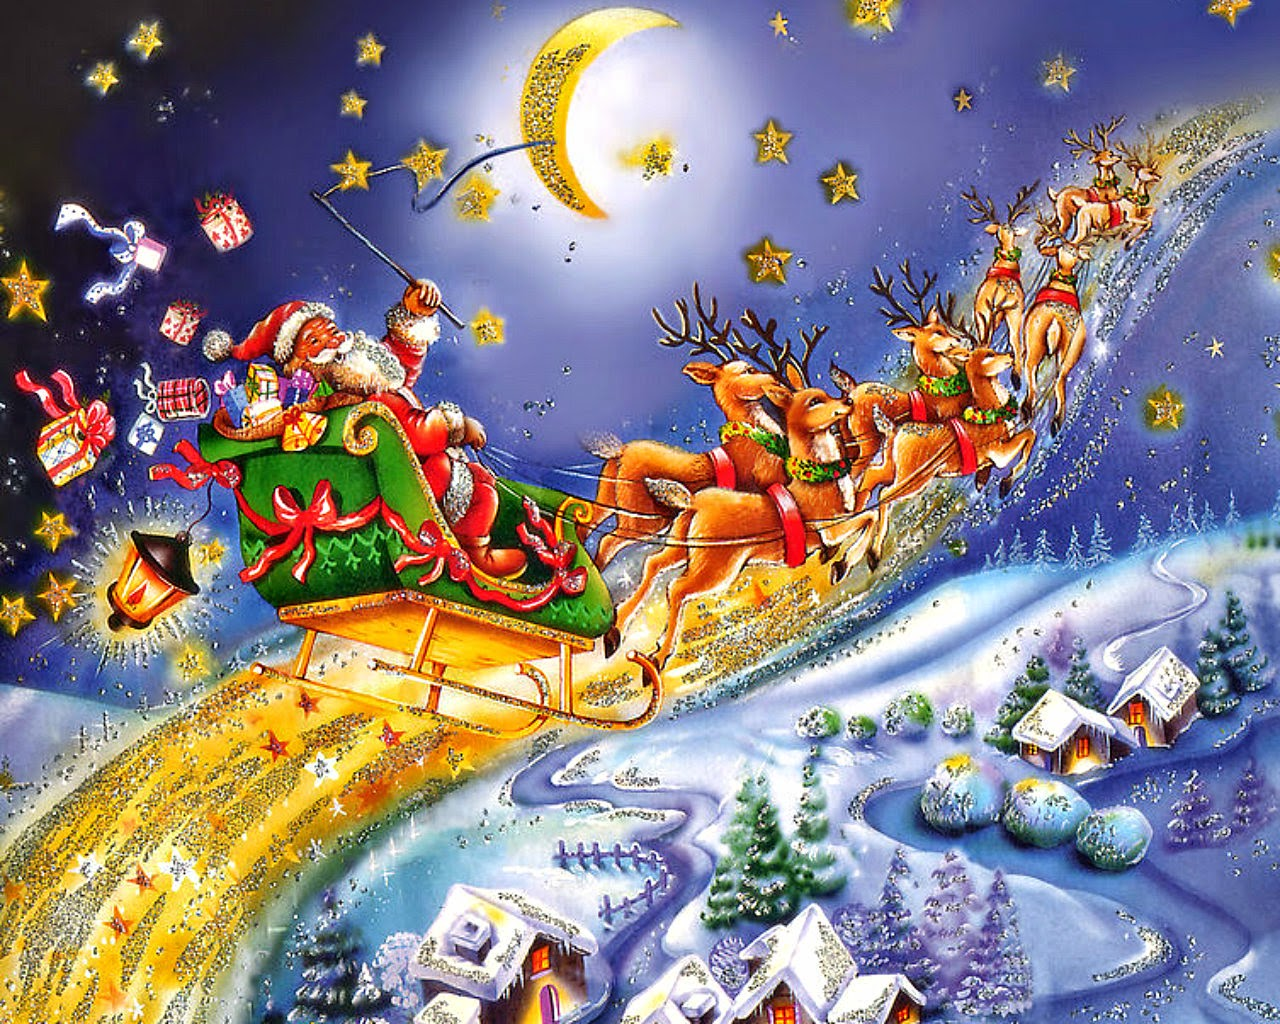 Santa-riding-above-north-pole-village-in-sleigh-image-for-kids-children-1280x1024.jpg